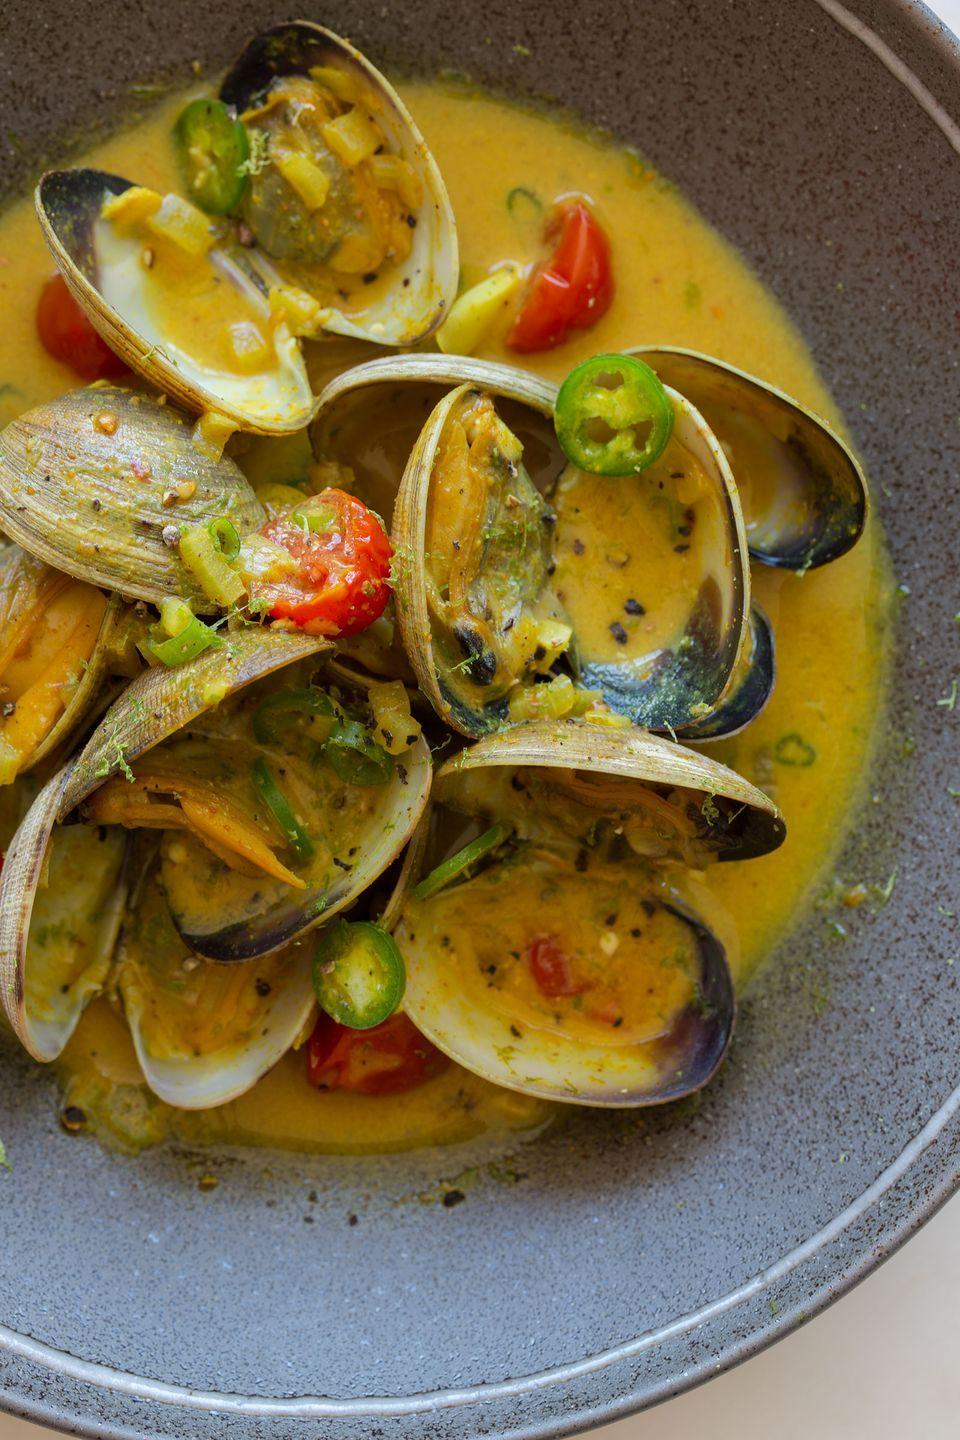 "<p>Nothing says summer like this sweet and spicy seafood dinner. </p><p>Get the recipe from <a href=""http://www.spoonforkbacon.com/2013/01/coconut-green-curry-steamed-clams/"" rel=""nofollow noopener"" target=""_blank"" data-ylk=""slk:Spoon Fork Bacon"" class=""link rapid-noclick-resp"">Spoon Fork Bacon</a>.</p>"